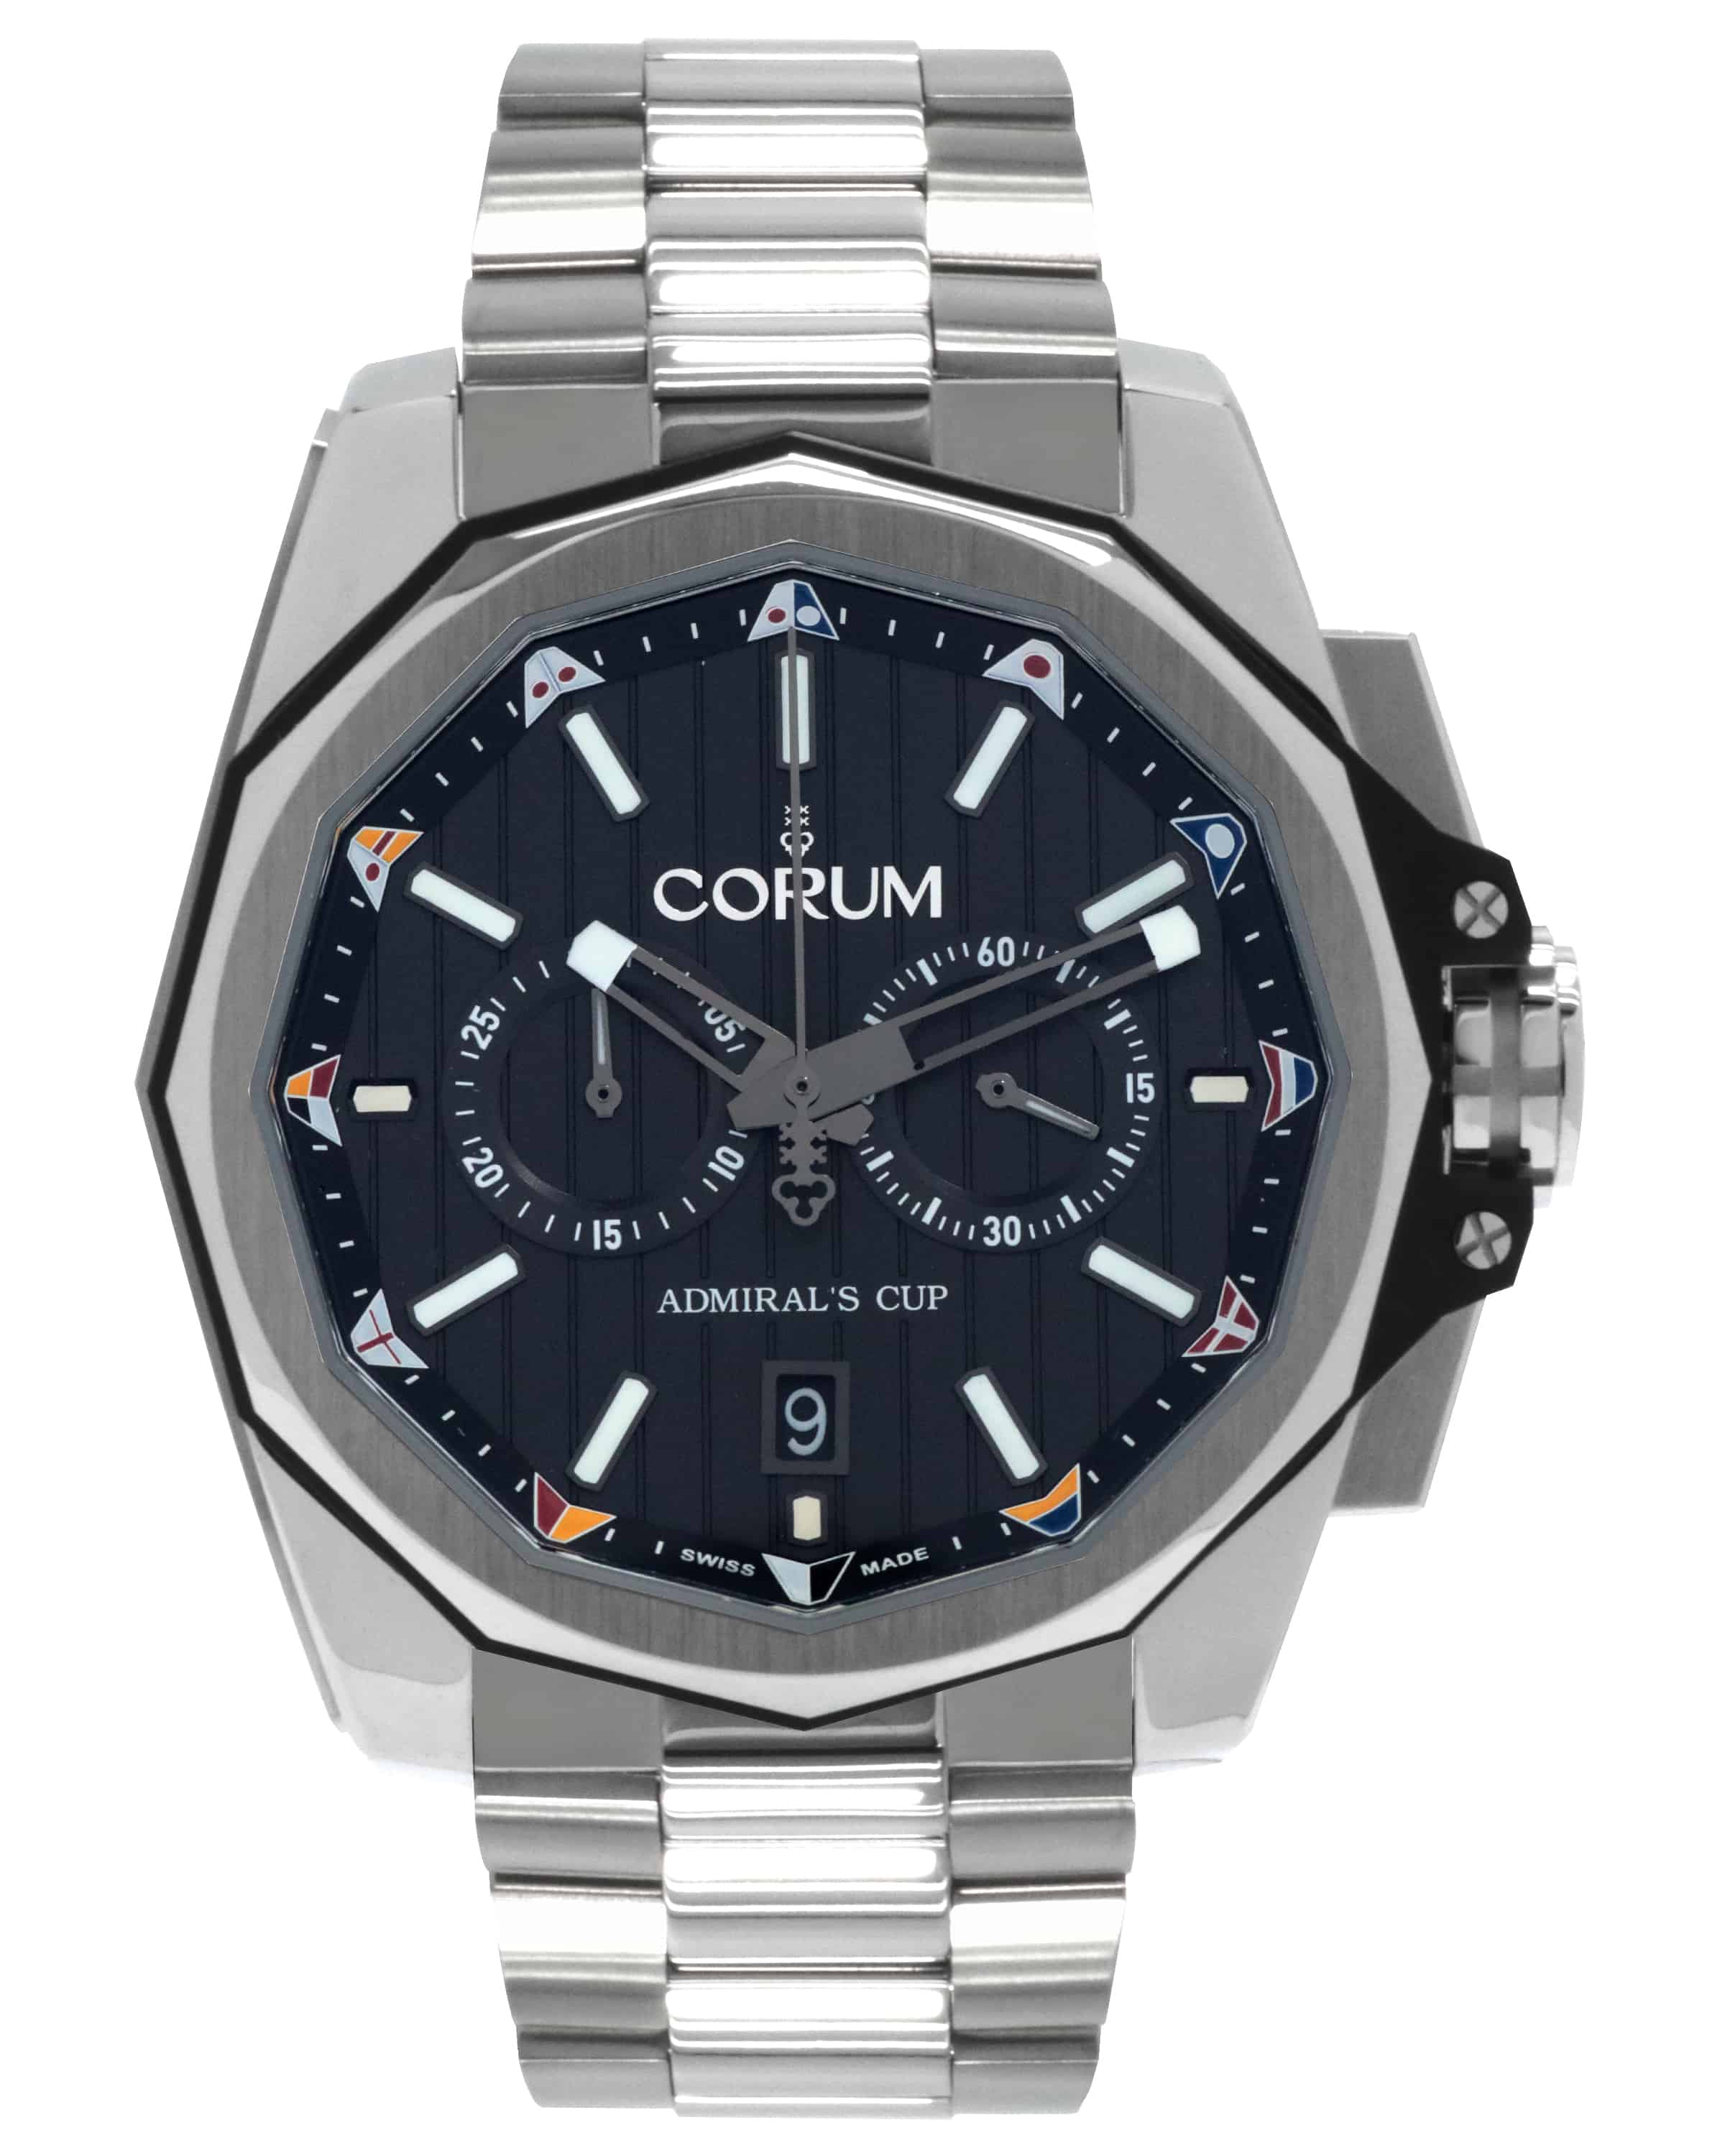 Corum Admiral's Cup AC-one 45 Automatic Chronograph Watch w/ Ti Bracelet $2799 + free s/h